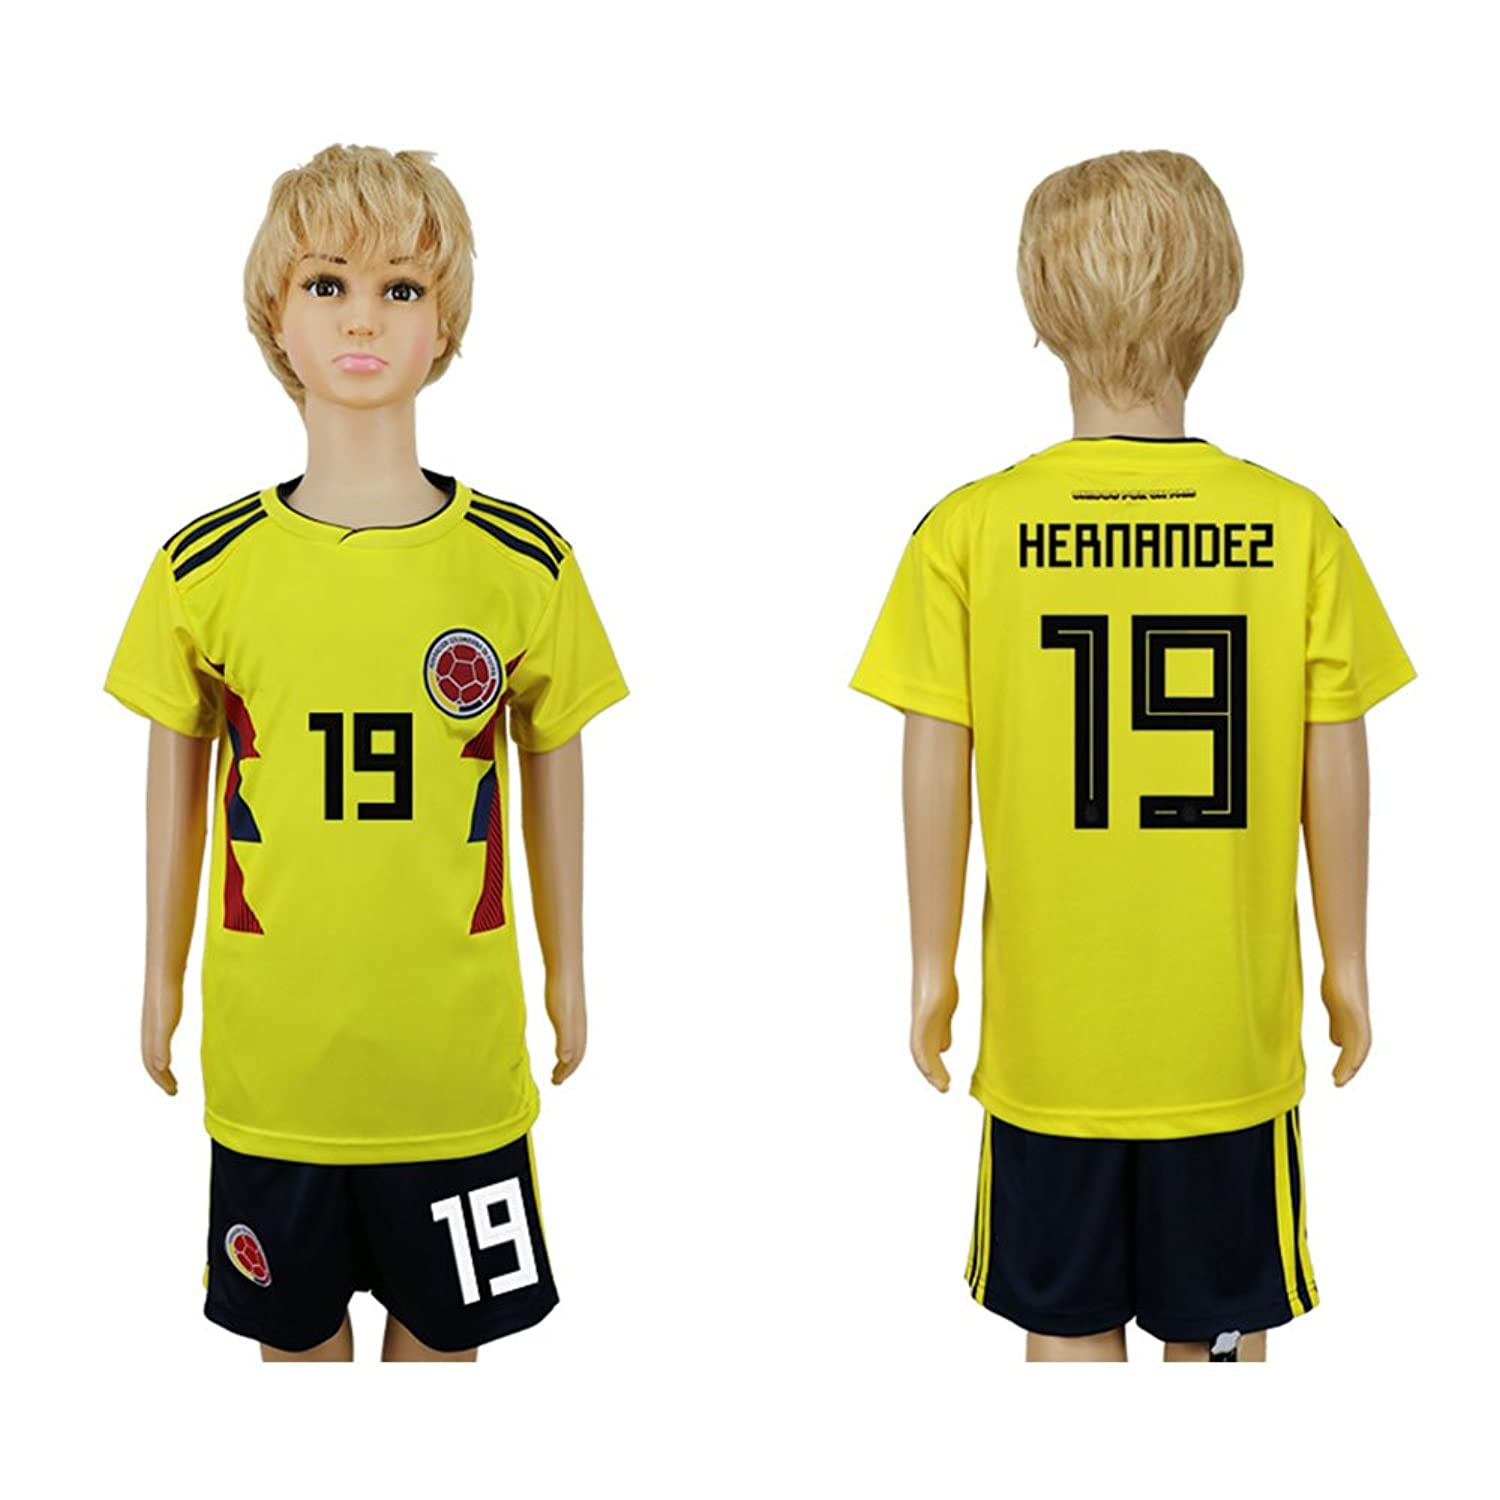 Soc.Meku SHIRT ボーイズ B07BPFZJ8G26# (10 to 11 Years Old)